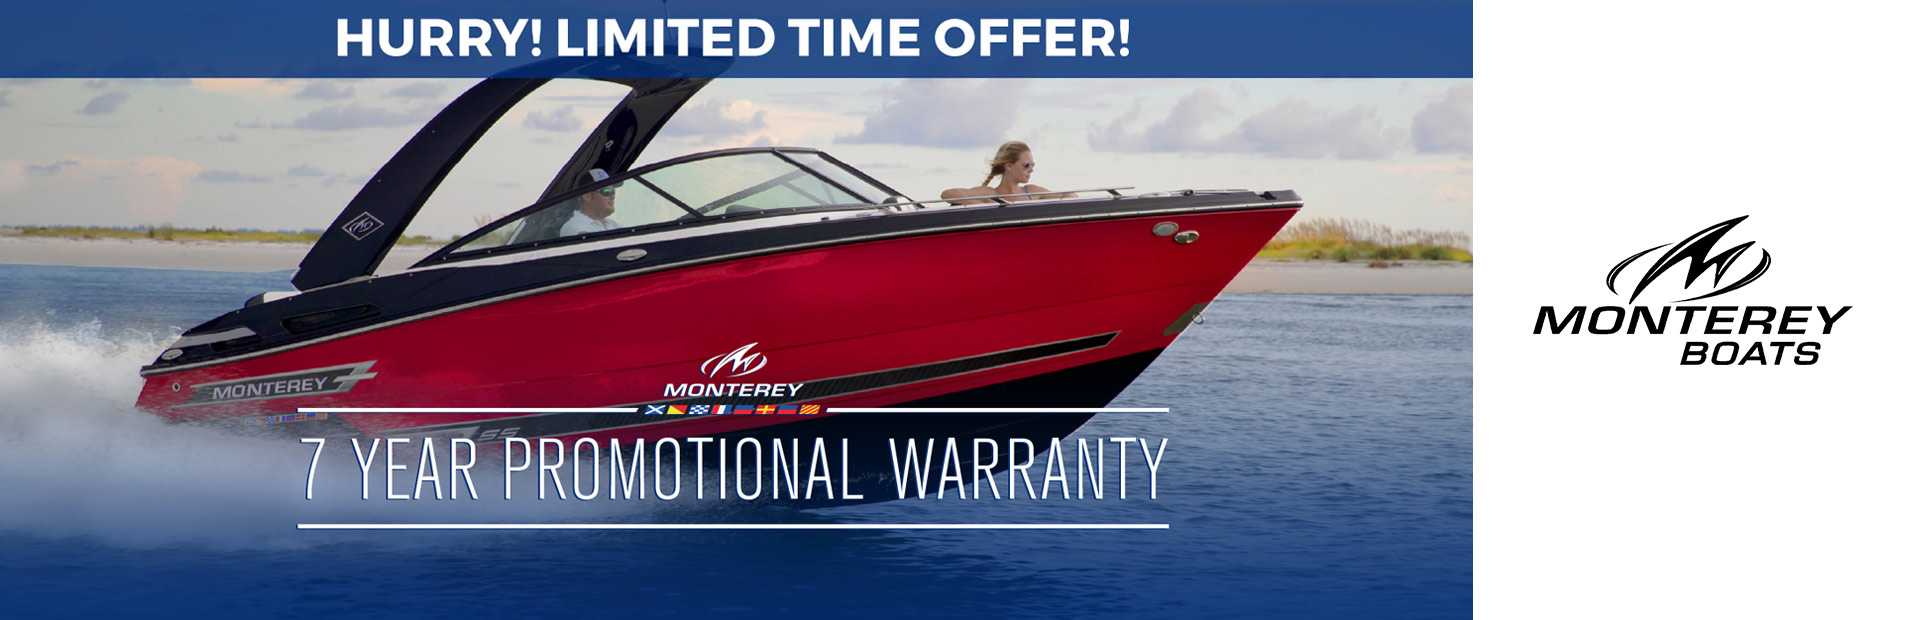 Monterey: 7 Year Promotional Warranty